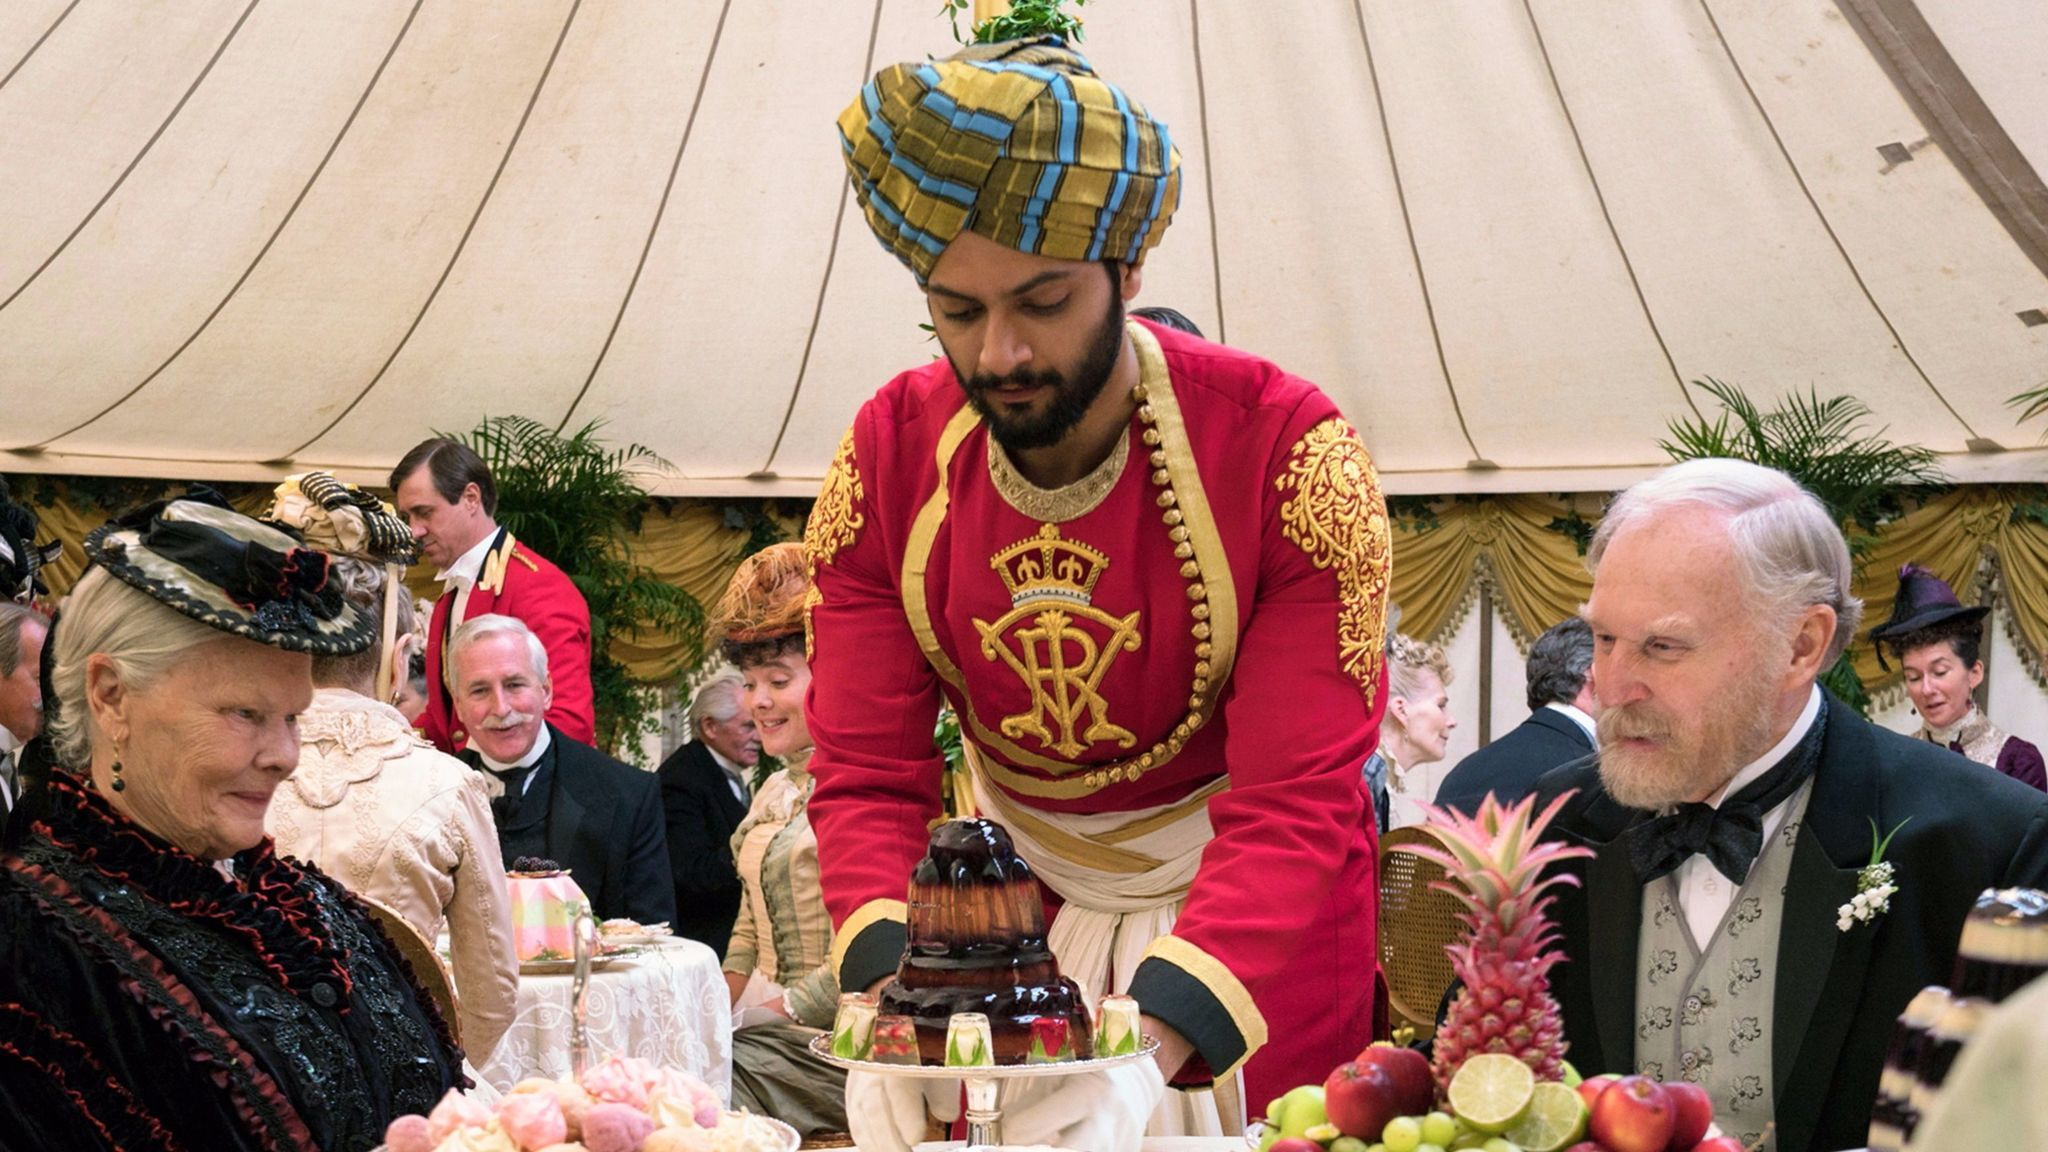 Ali Fazal, center, portrays a servant from India who is befriended by Judi Dench's Queen Victoria. With Tim Pigott-Smith.